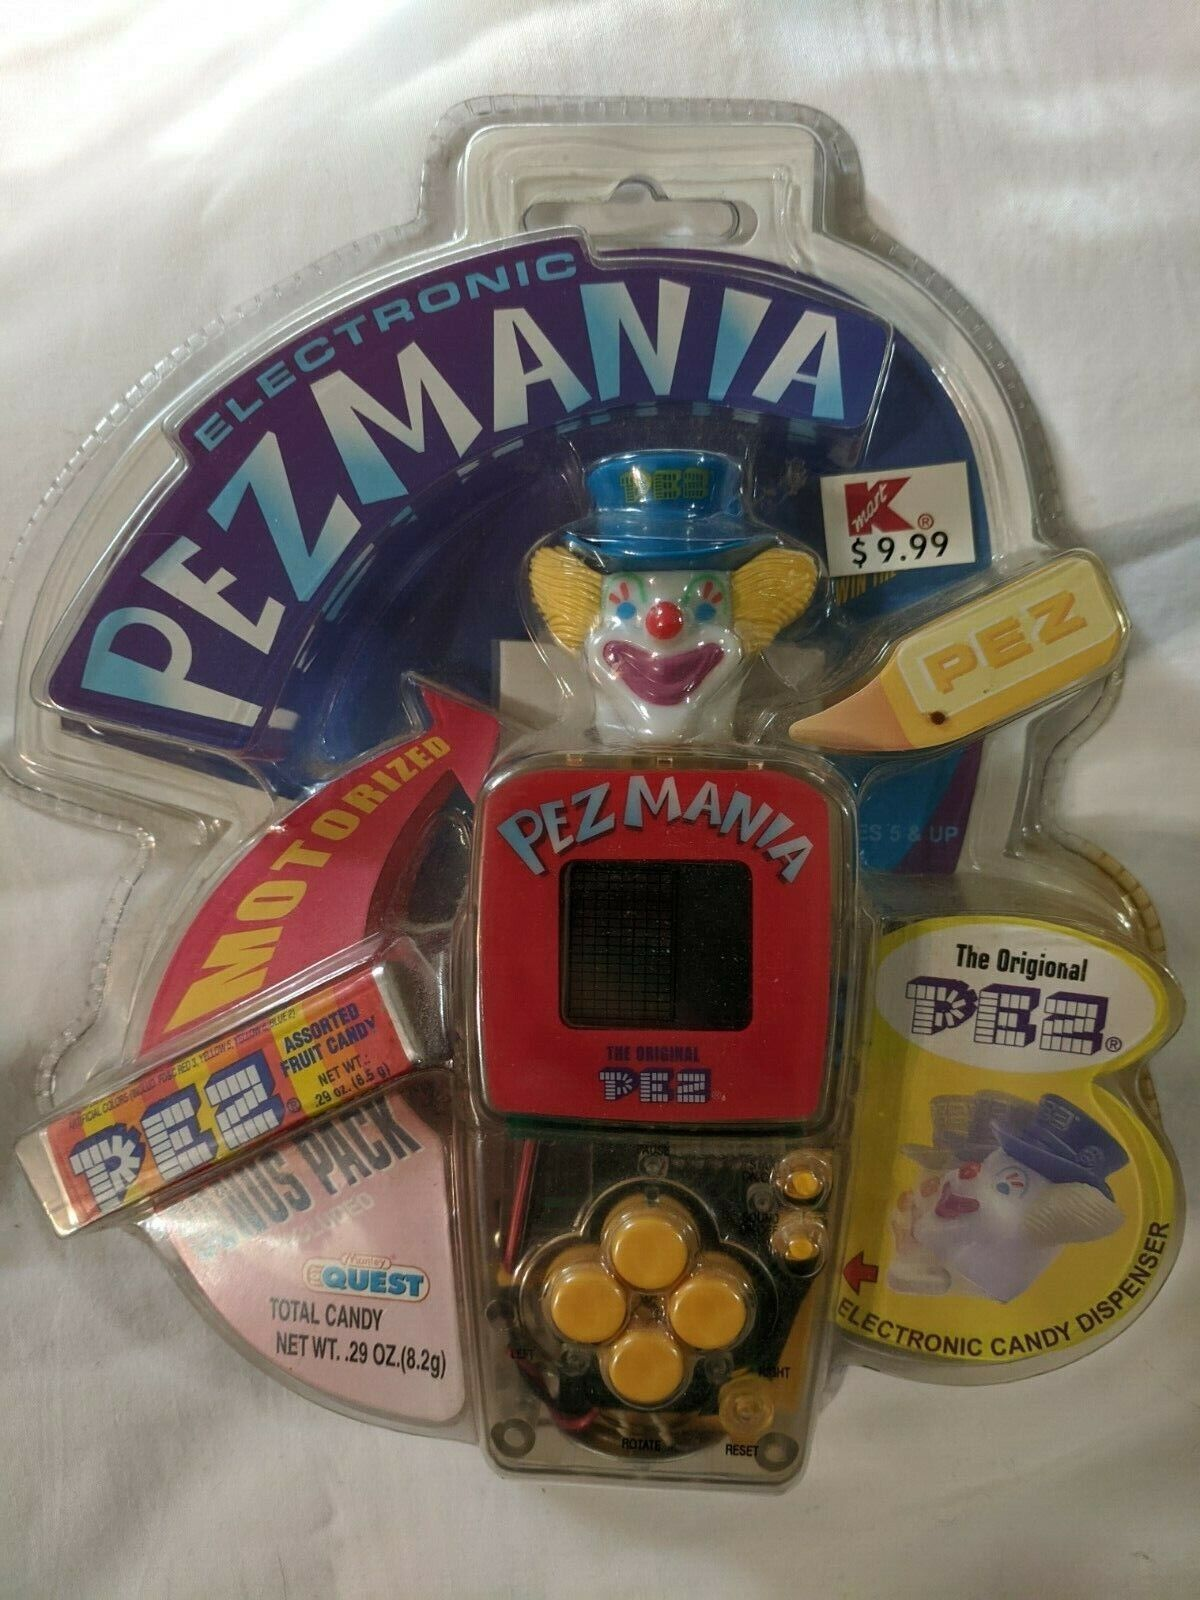 Pezmania Electronic Game Mint In Package - $14.99